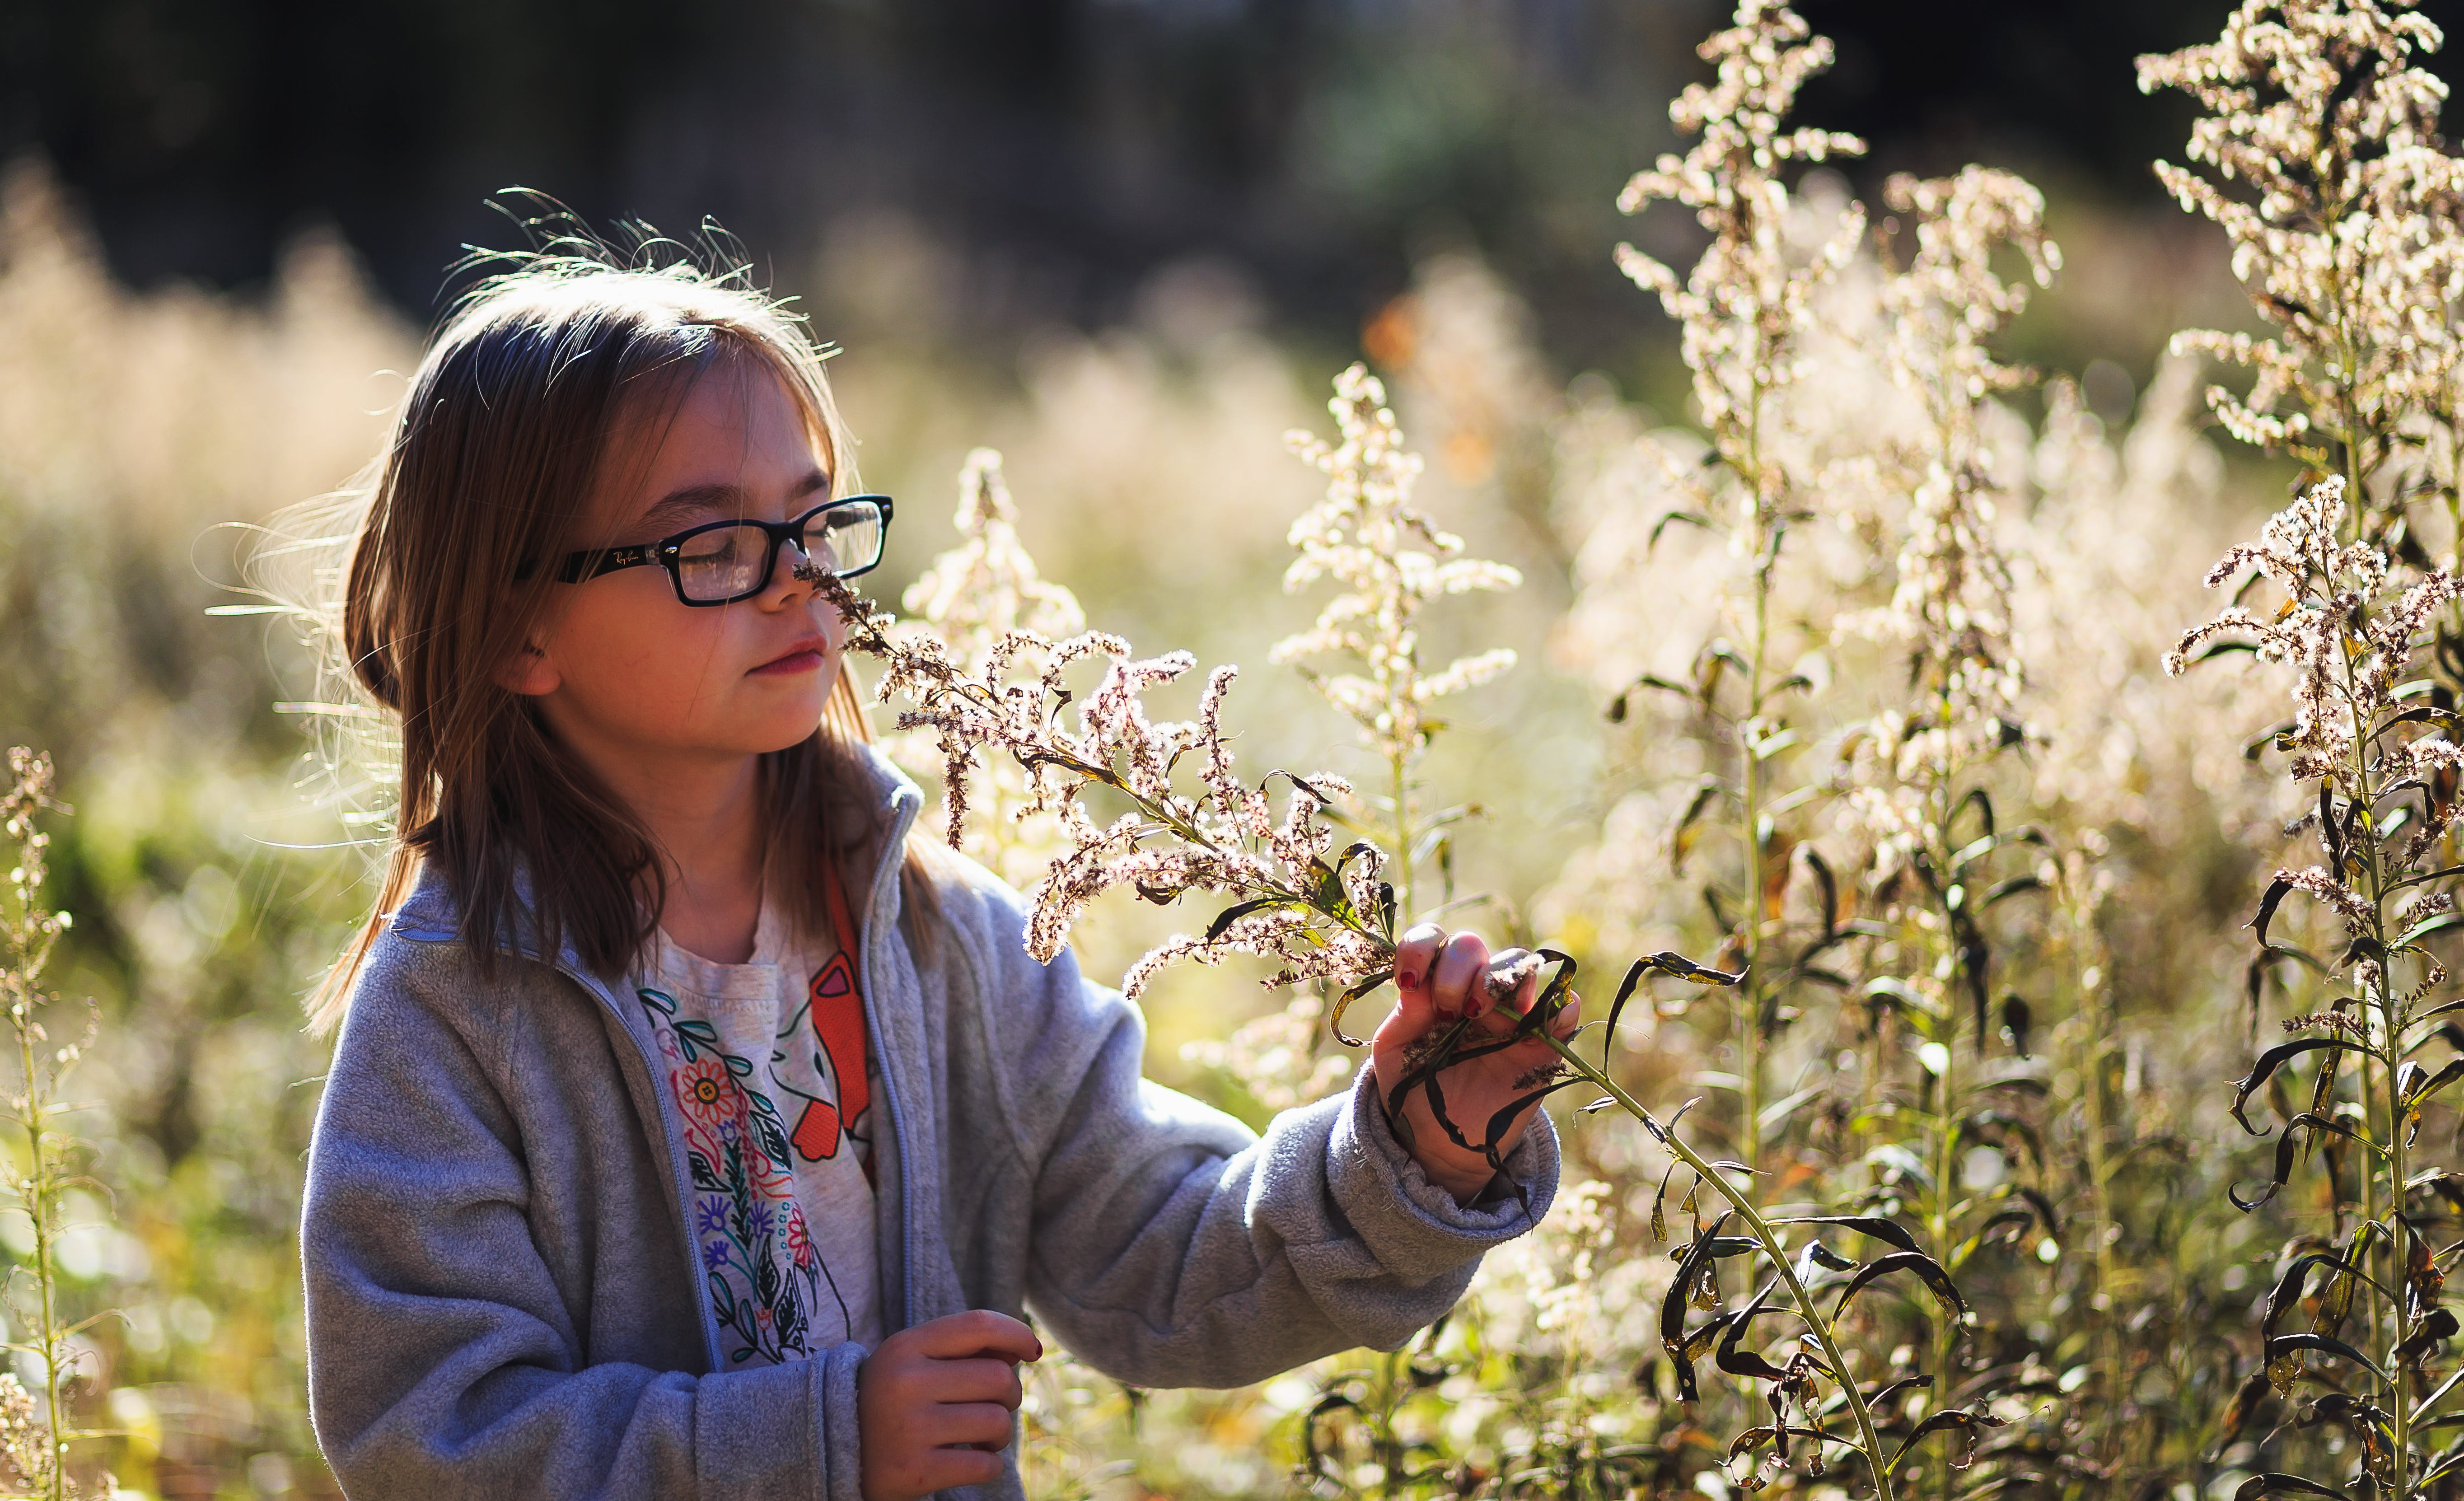 Girl Wearing Eyeglasses Smelling Flowers